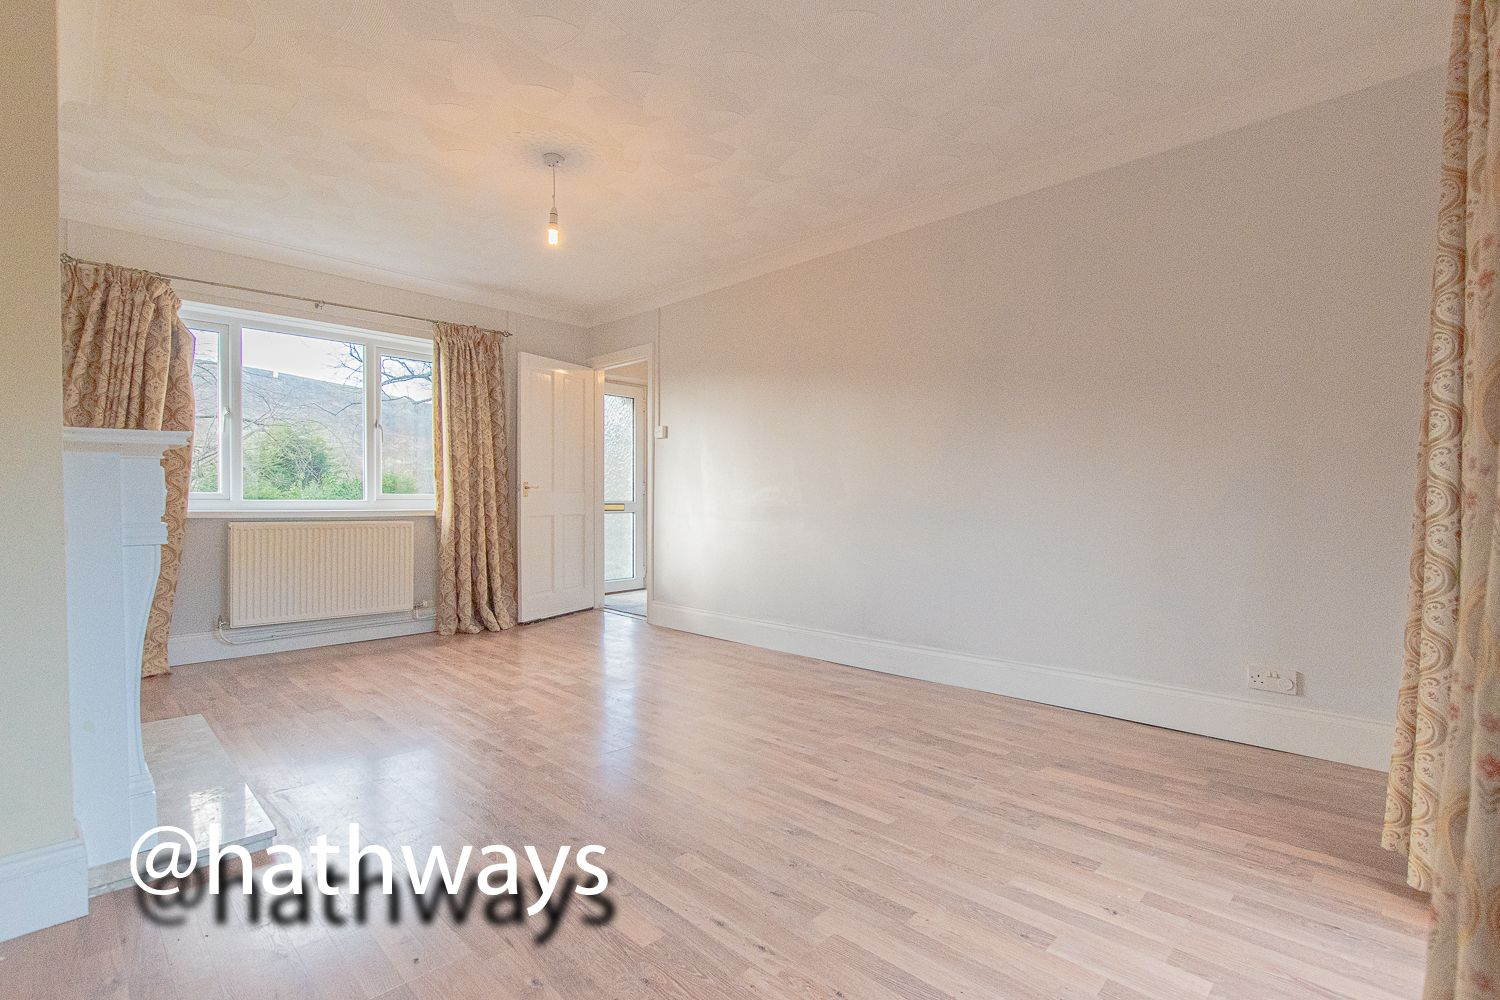 3 bed house for sale in Manor Road  - Property Image 7